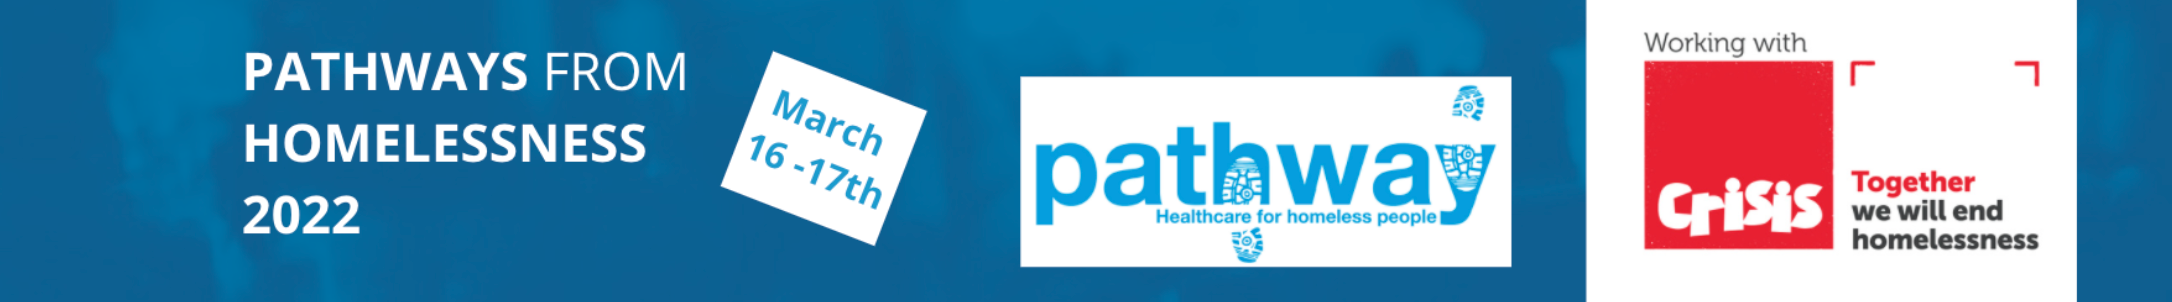 Pathways from Homelessness 2022